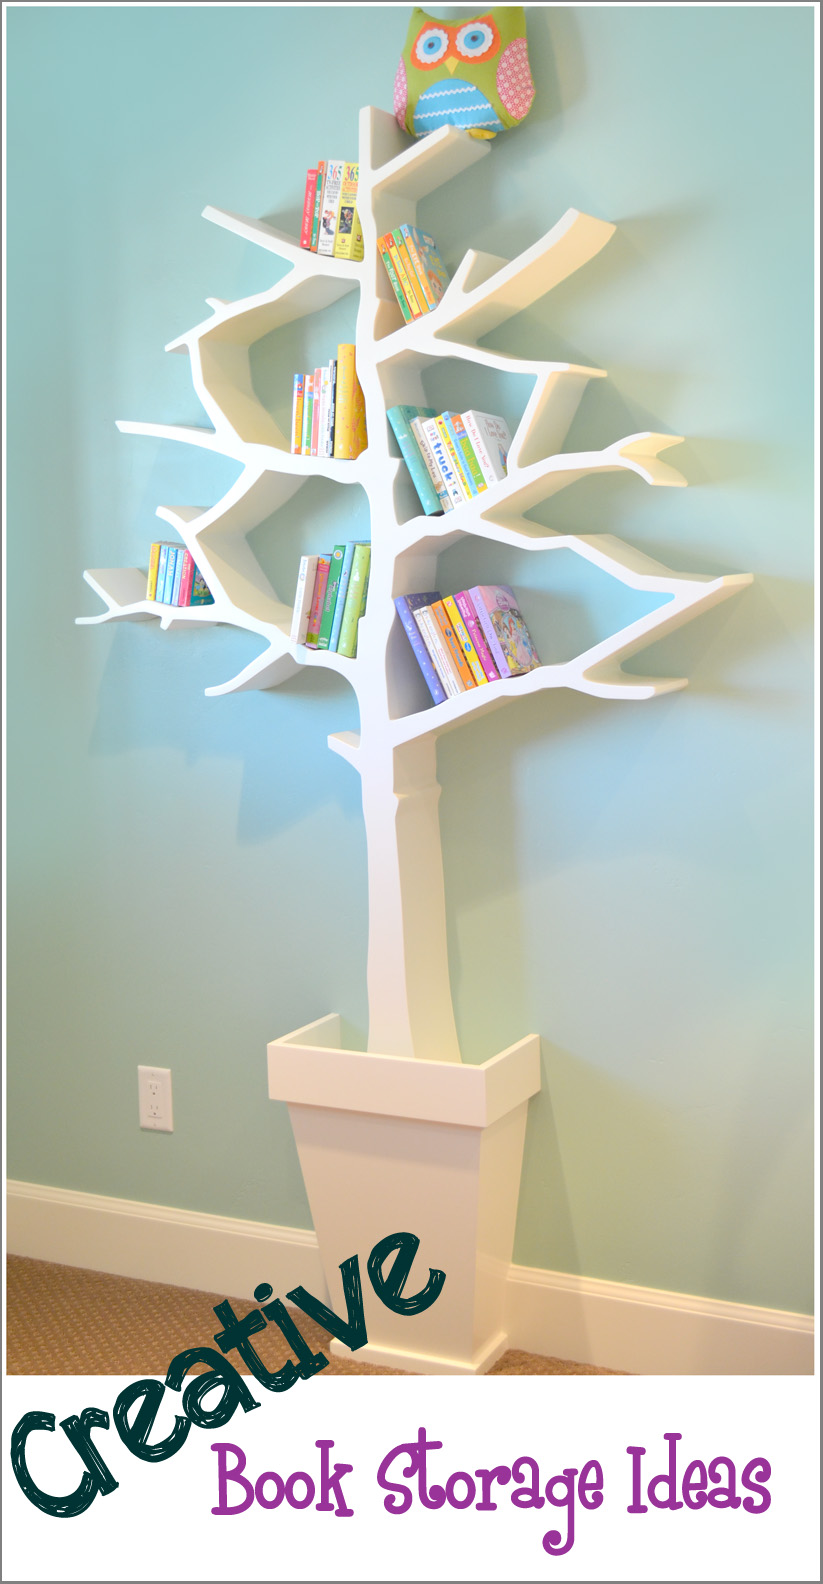 Creative Book Storage/Organization Ideas